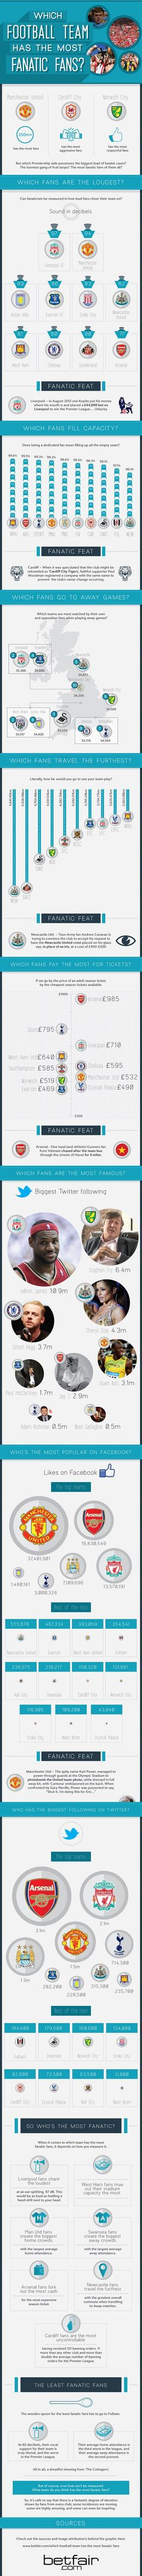 Which Football Team Has The Most Fanatic Fans? [Infographic]